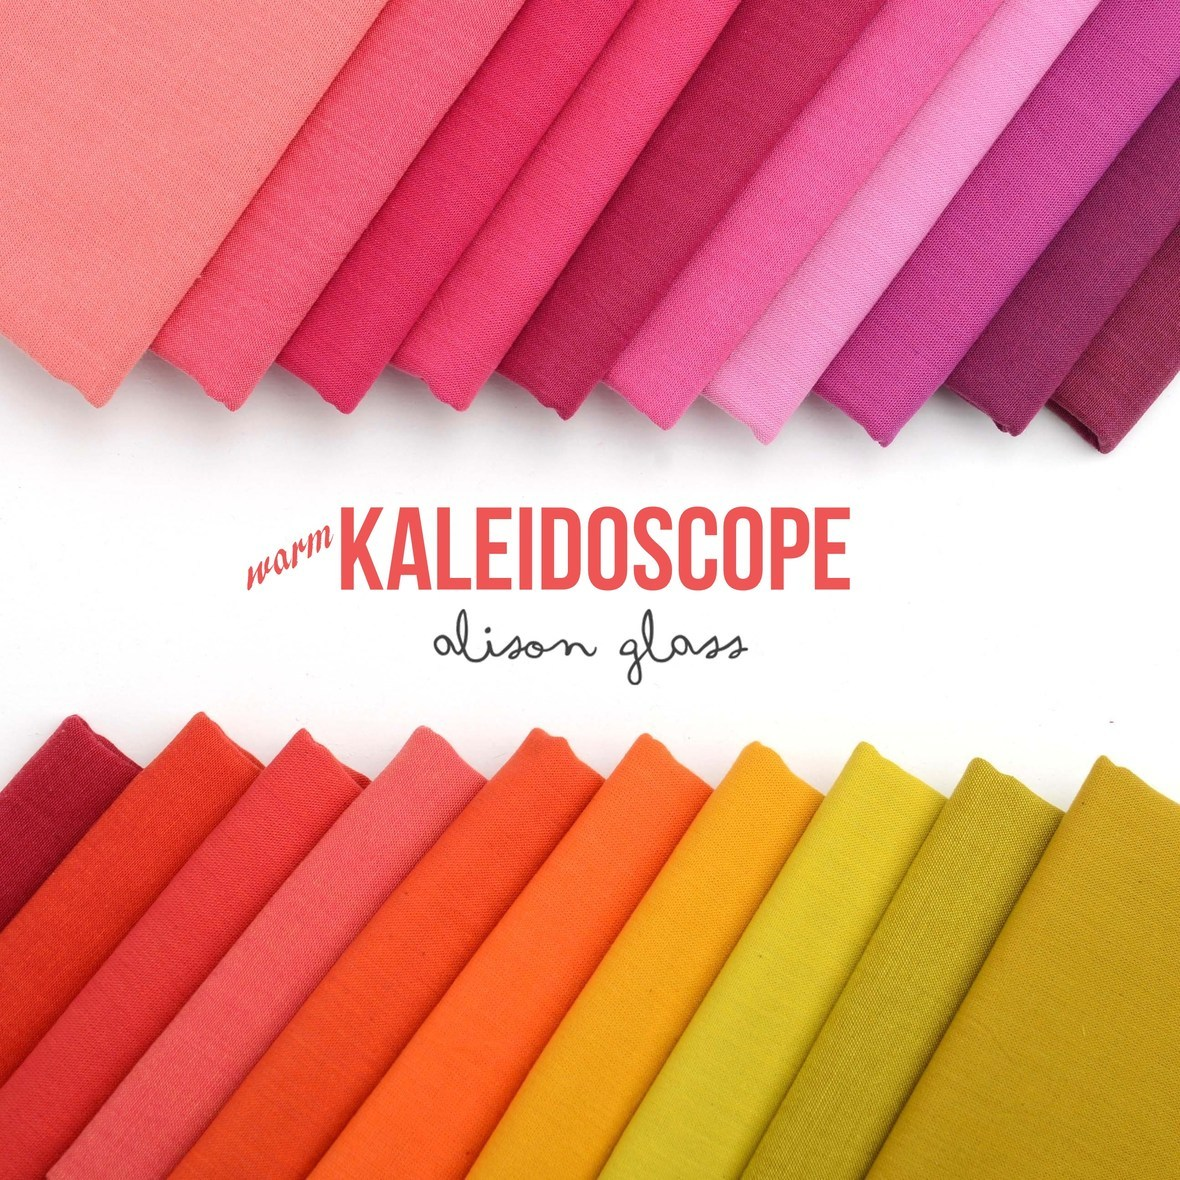 Kaleidoscope Warm Fabric Poster Alison Glass at Hawthorne Threads